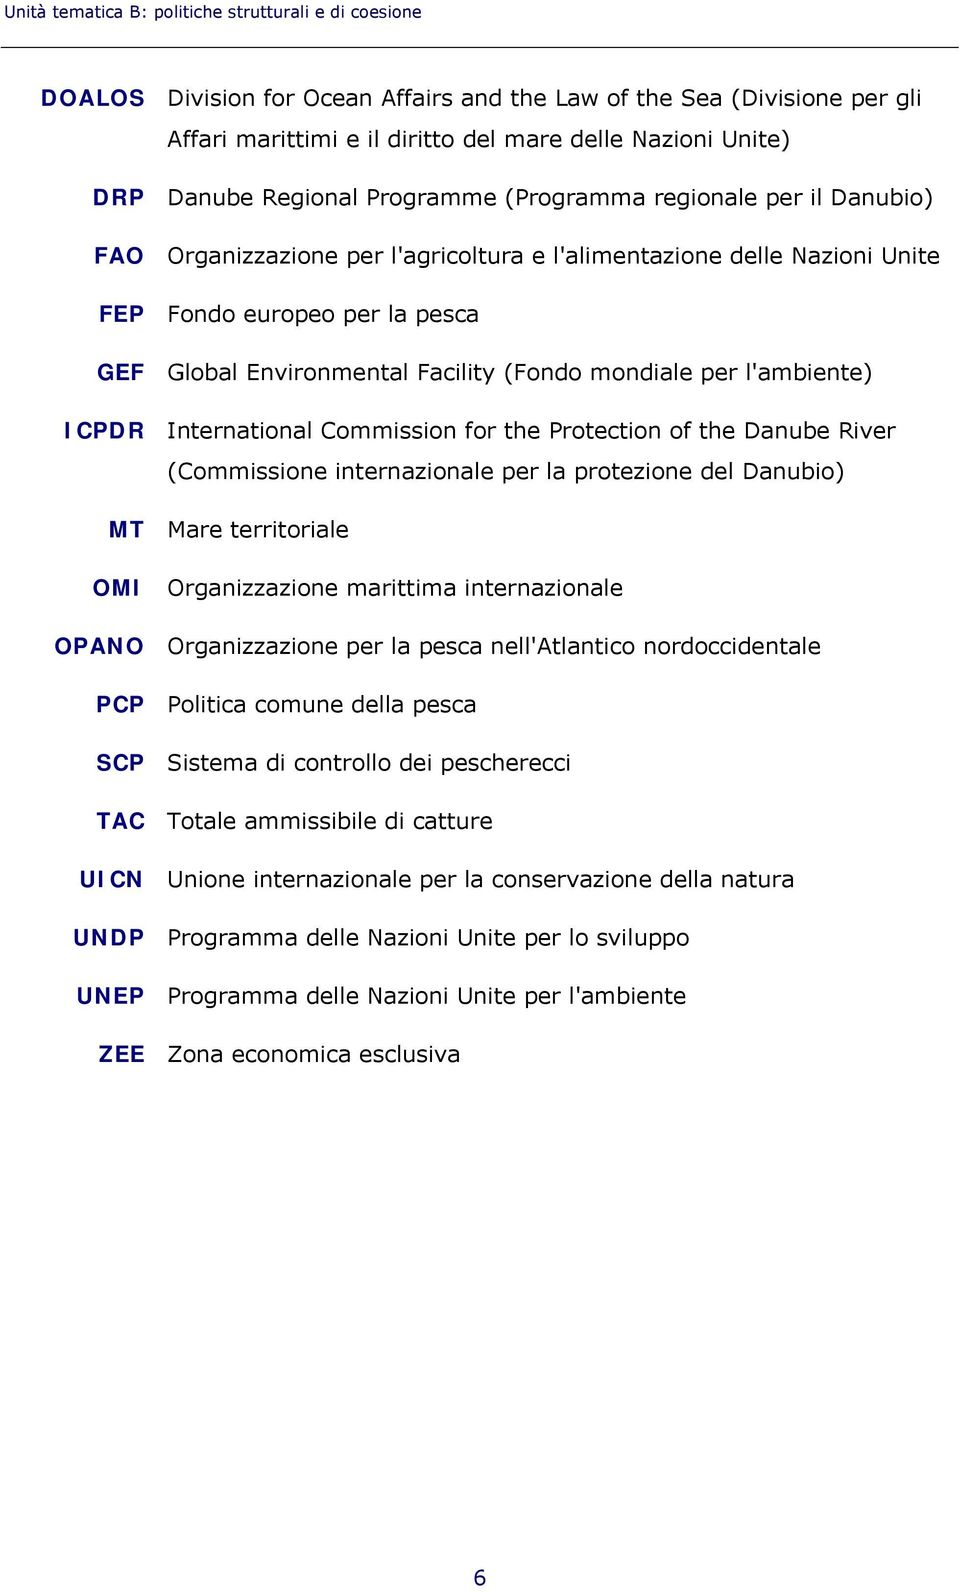 Facility (Fondo mondiale per l'ambiente) ICPDR International Commission for the Protection of the Danube River (Commissione internazionale per la protezione del Danubio) MT Mare territoriale OMI